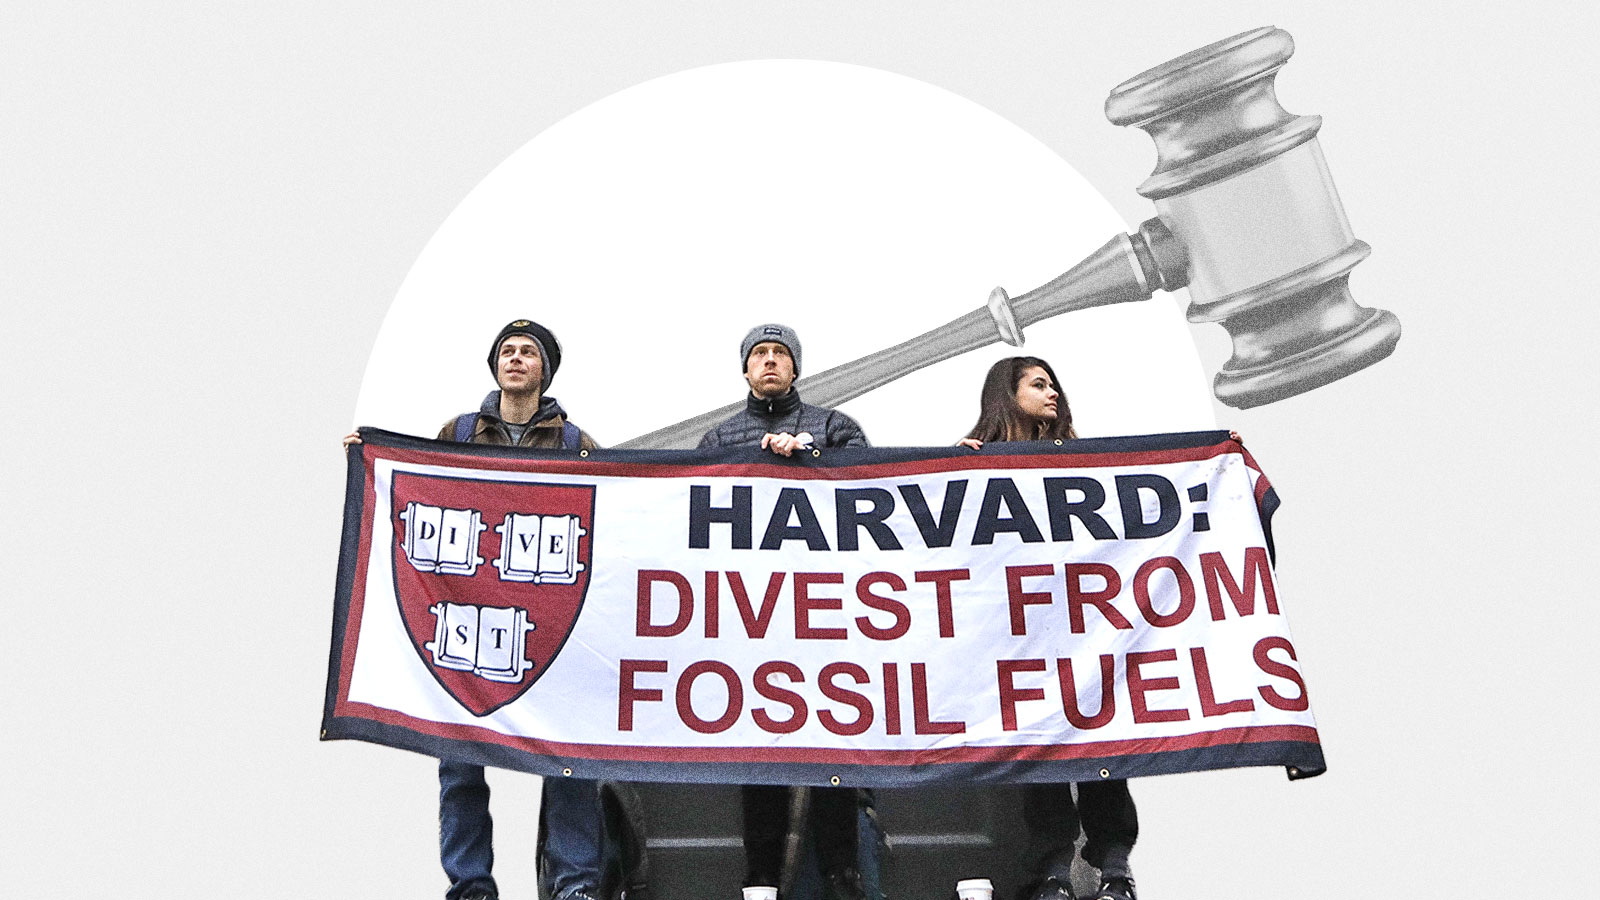 Students protesting Harvard to divest from fossil fuels with a gavel in the background